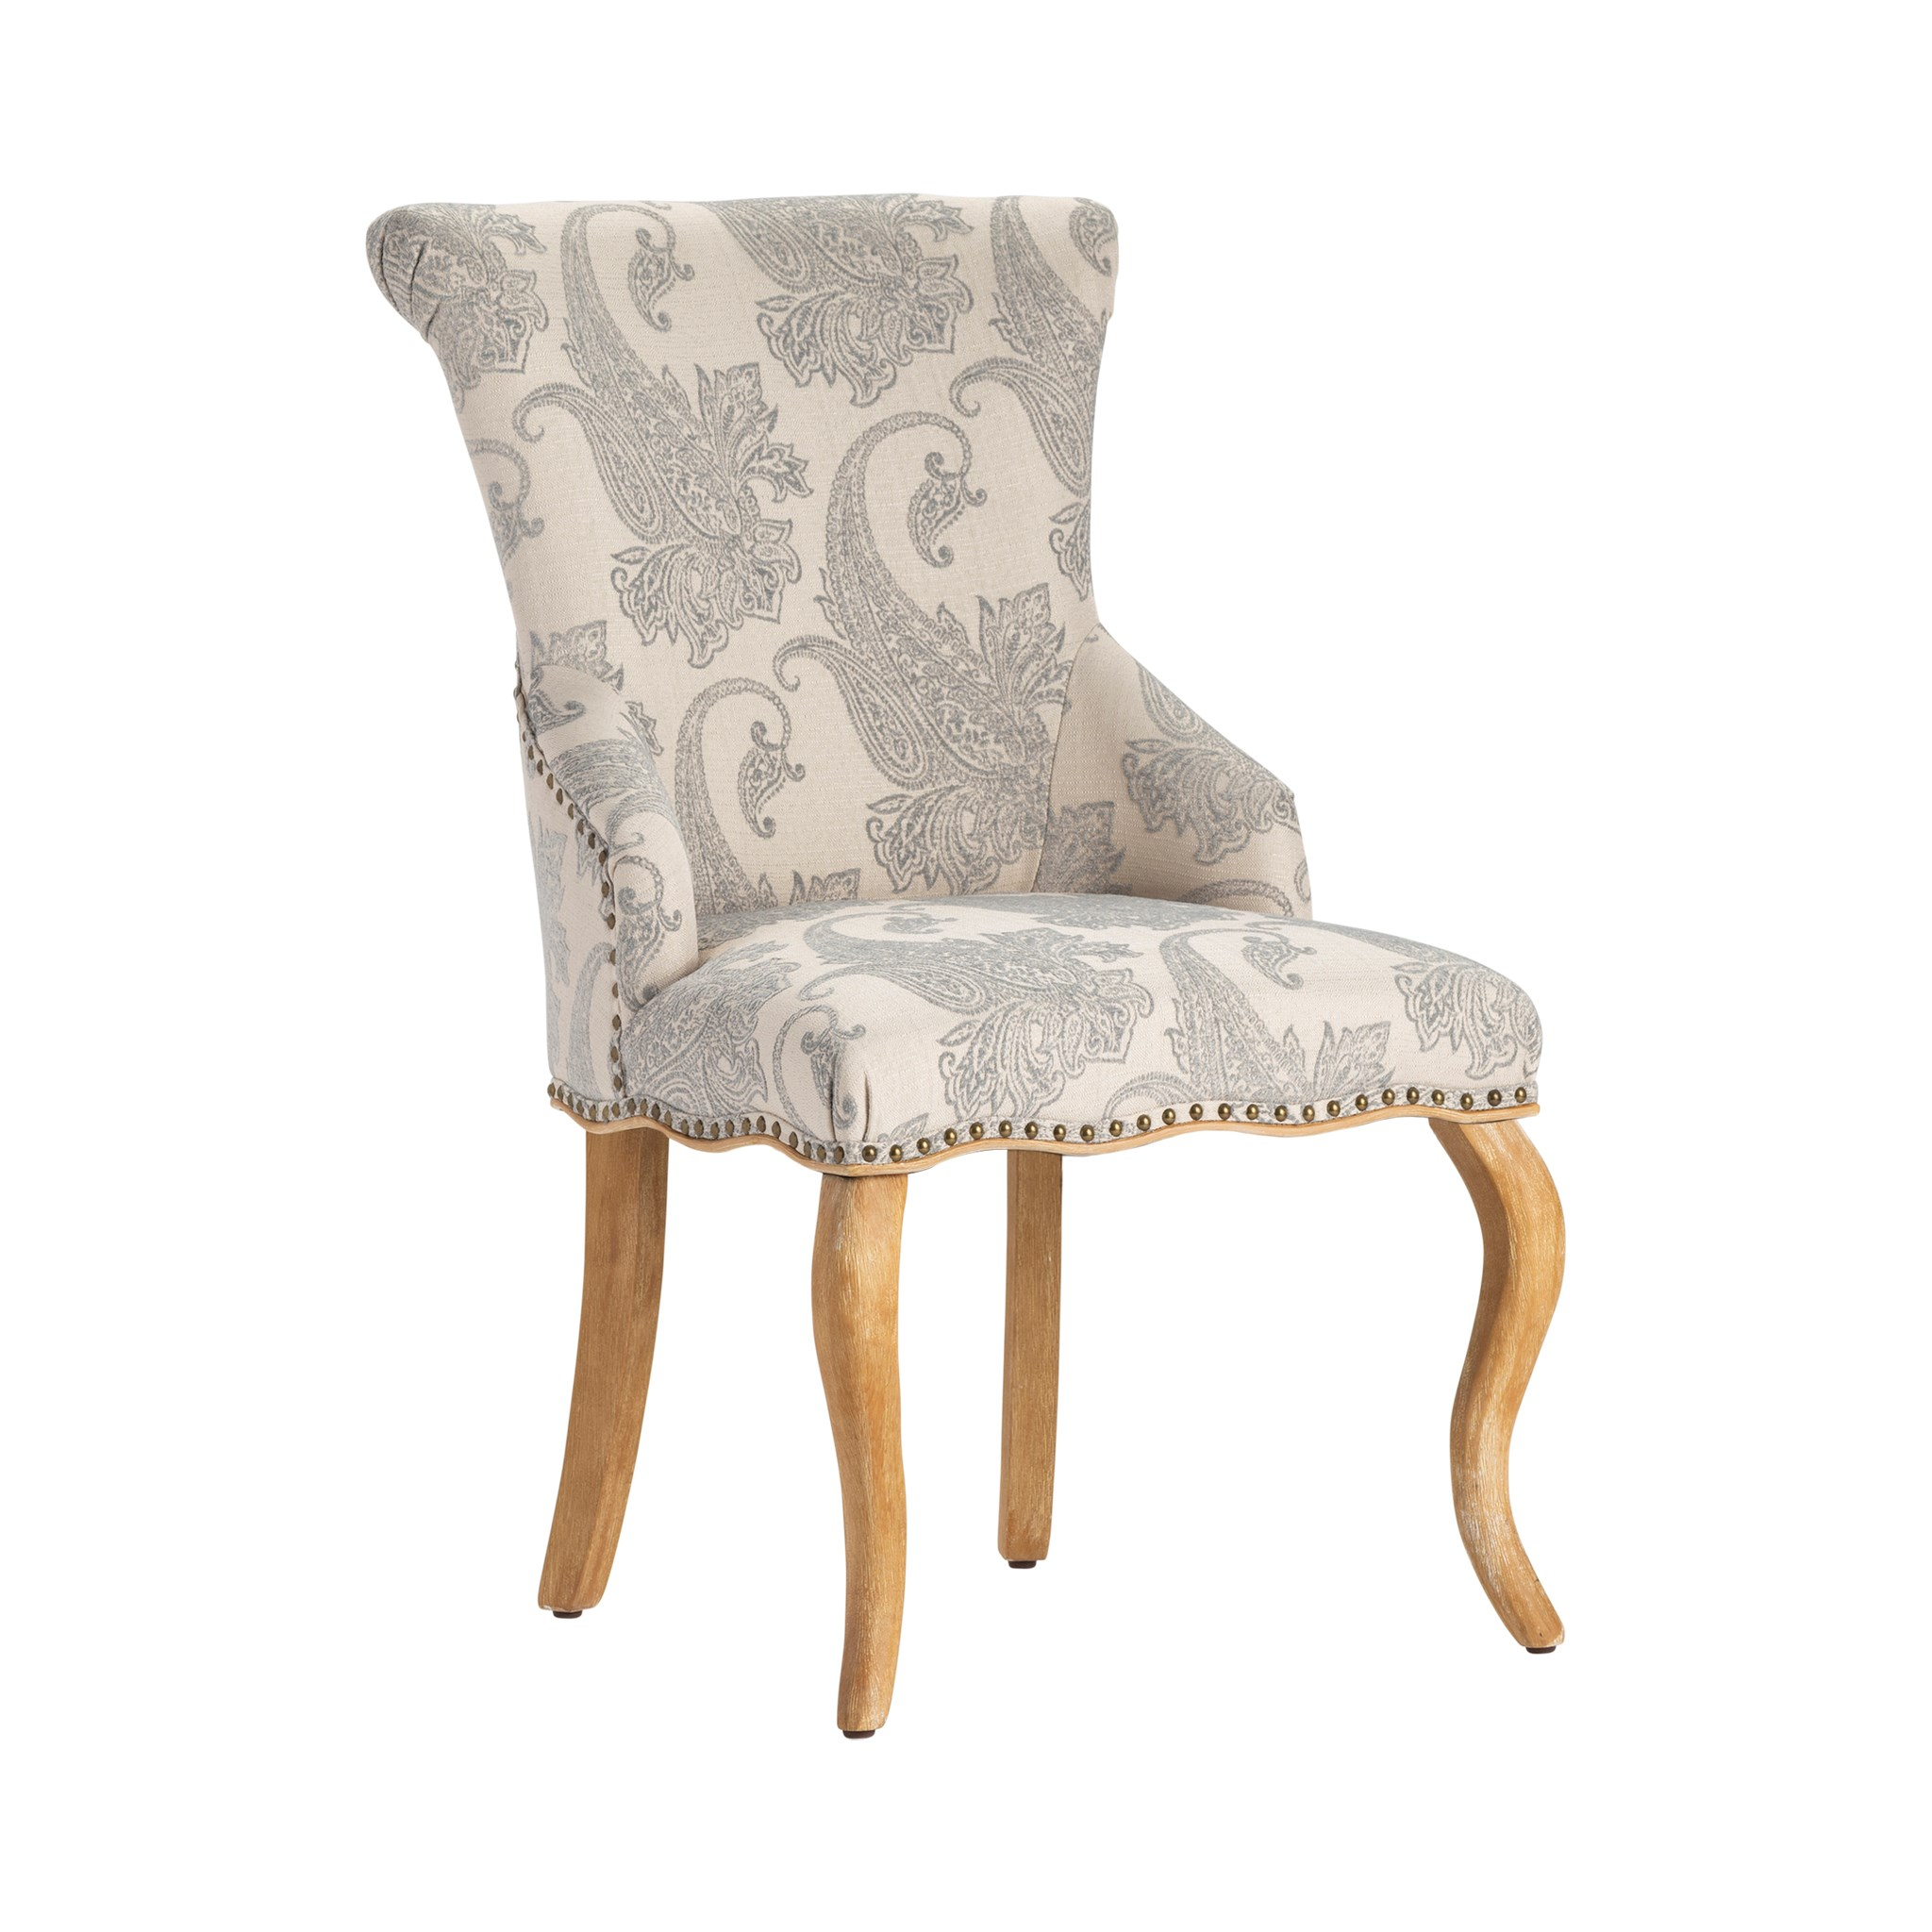 Astounding Danielle Paisley Upholstered Accent Chair With Distressed Wood Legs Ibusinesslaw Wood Chair Design Ideas Ibusinesslaworg